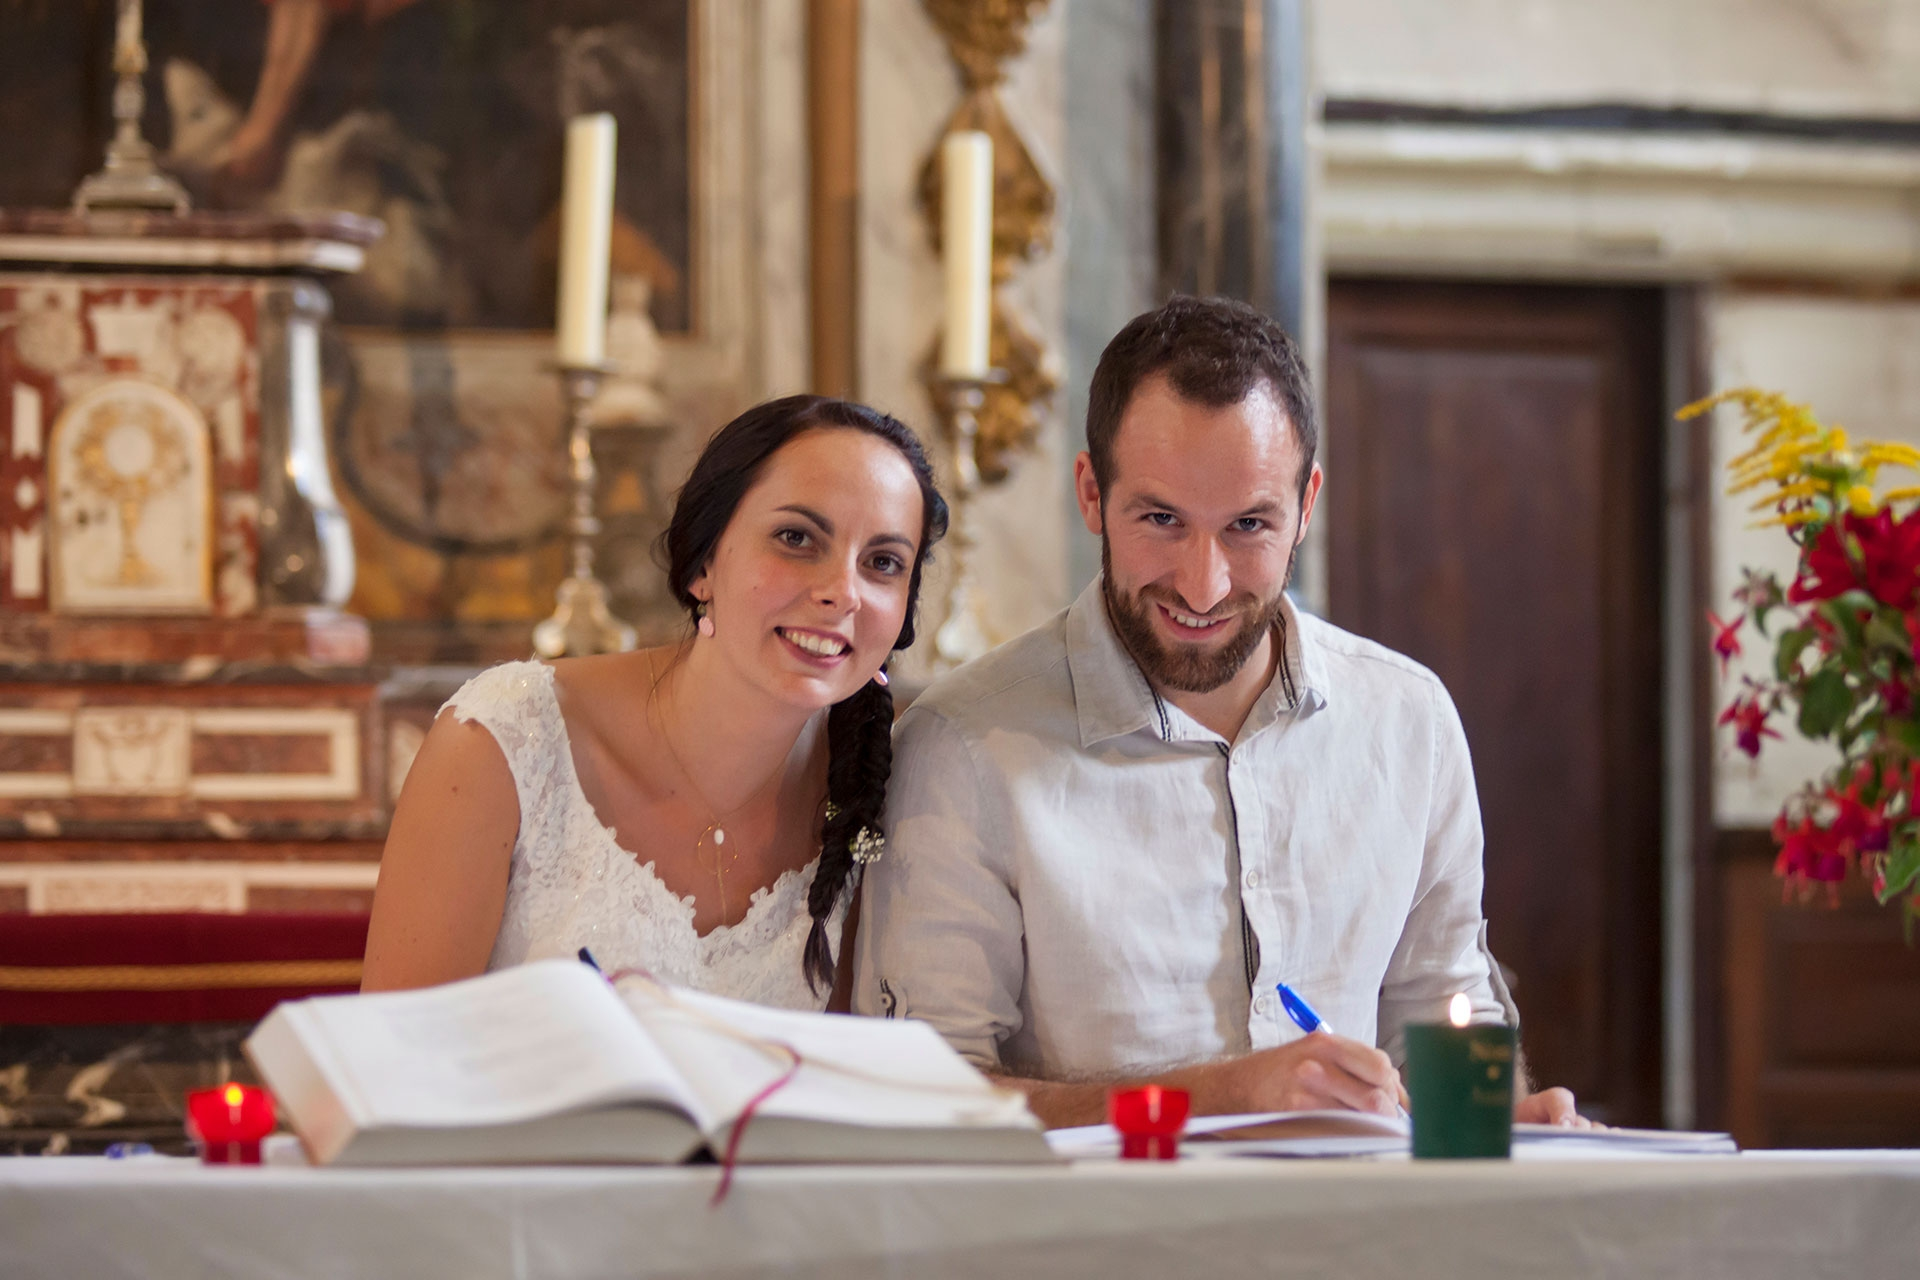 particuliers-evenements-mariage-oui-carla&jeremy-55